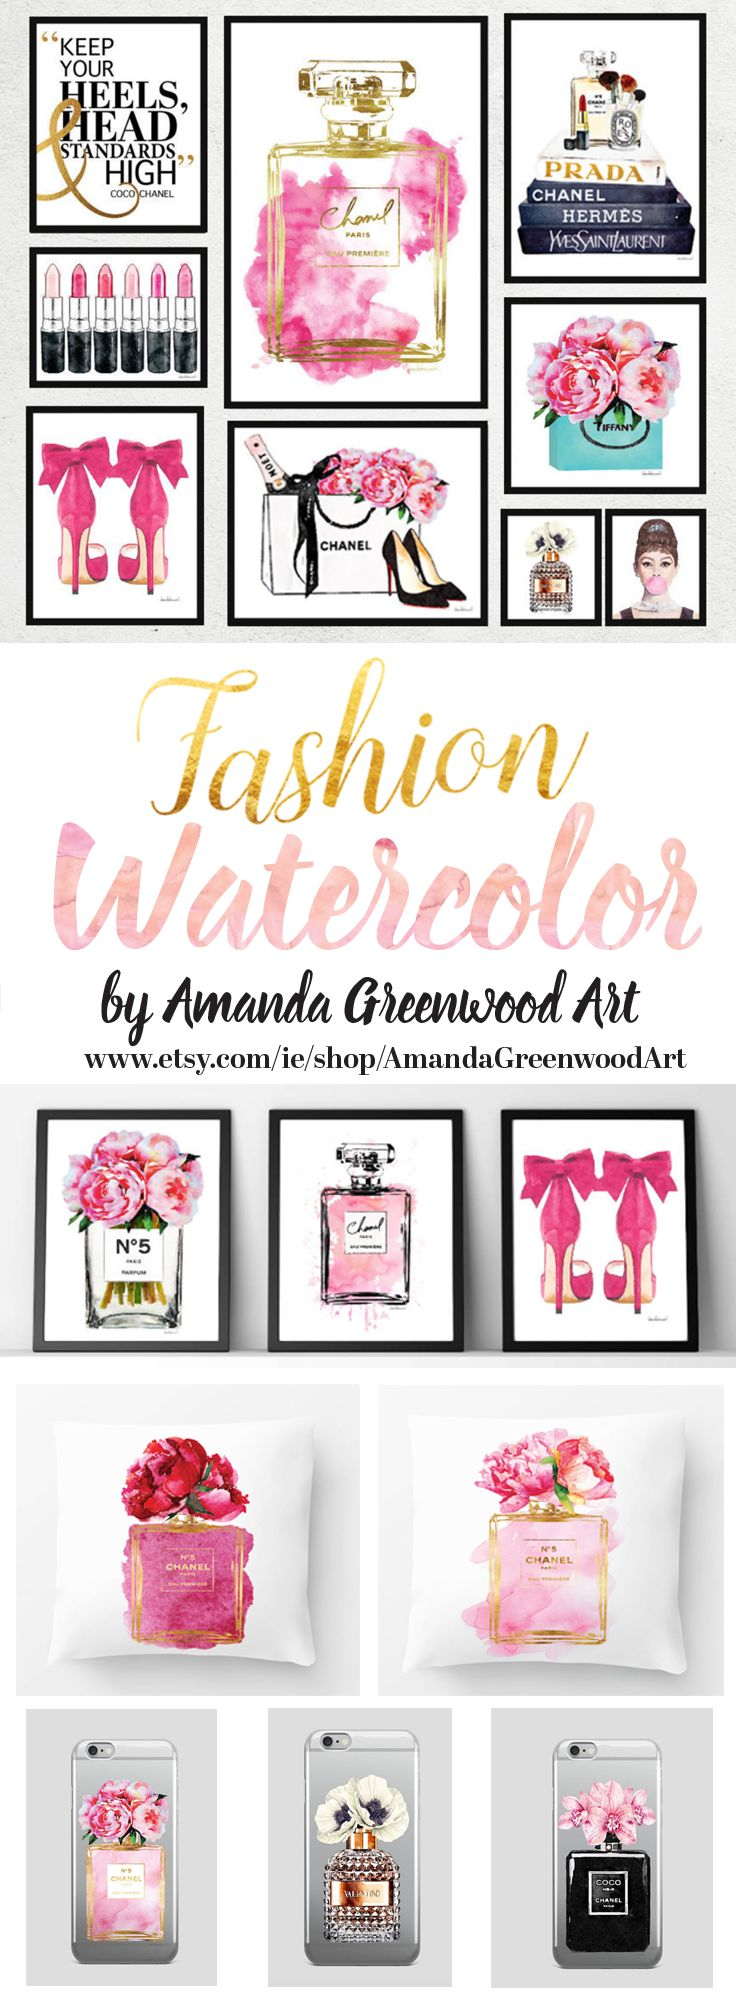 Love these collections of Chanel inspired art! Watercolor fashion illustration by amanda Greenwood art on Etsy. With a love of flowers, Chanel, Perfumes and make up. Perfect wall art for the bedroom, bathroom & guest room. www.etsy.com/ie/shop/AmandaGreenwoodArt